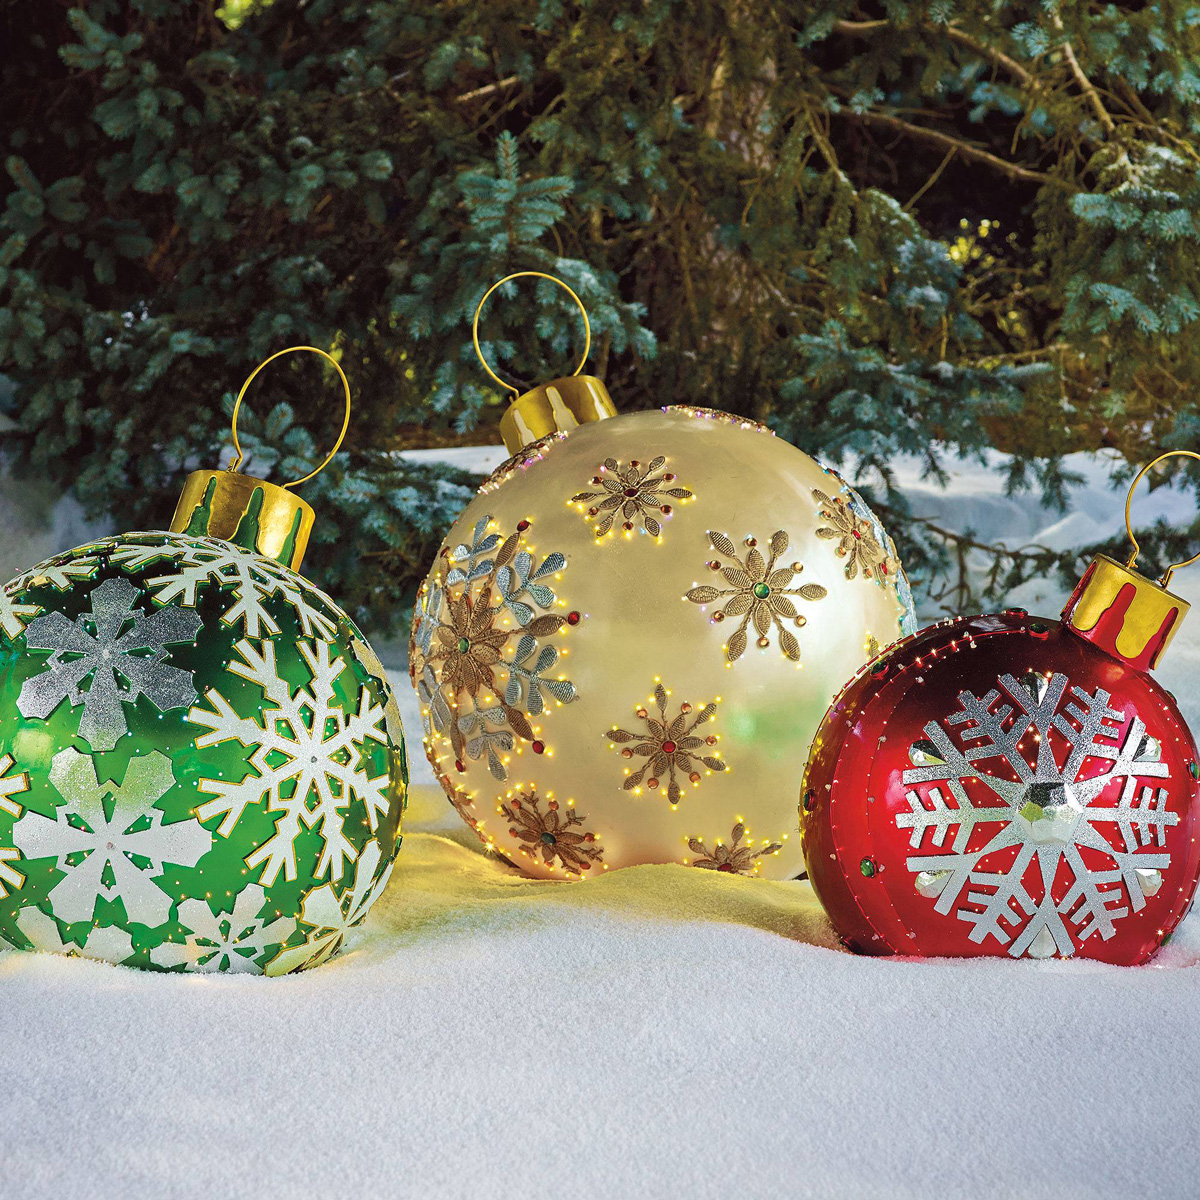 Massive Fiber-Optic LED Outdoor Christmas Ornaments - The ...